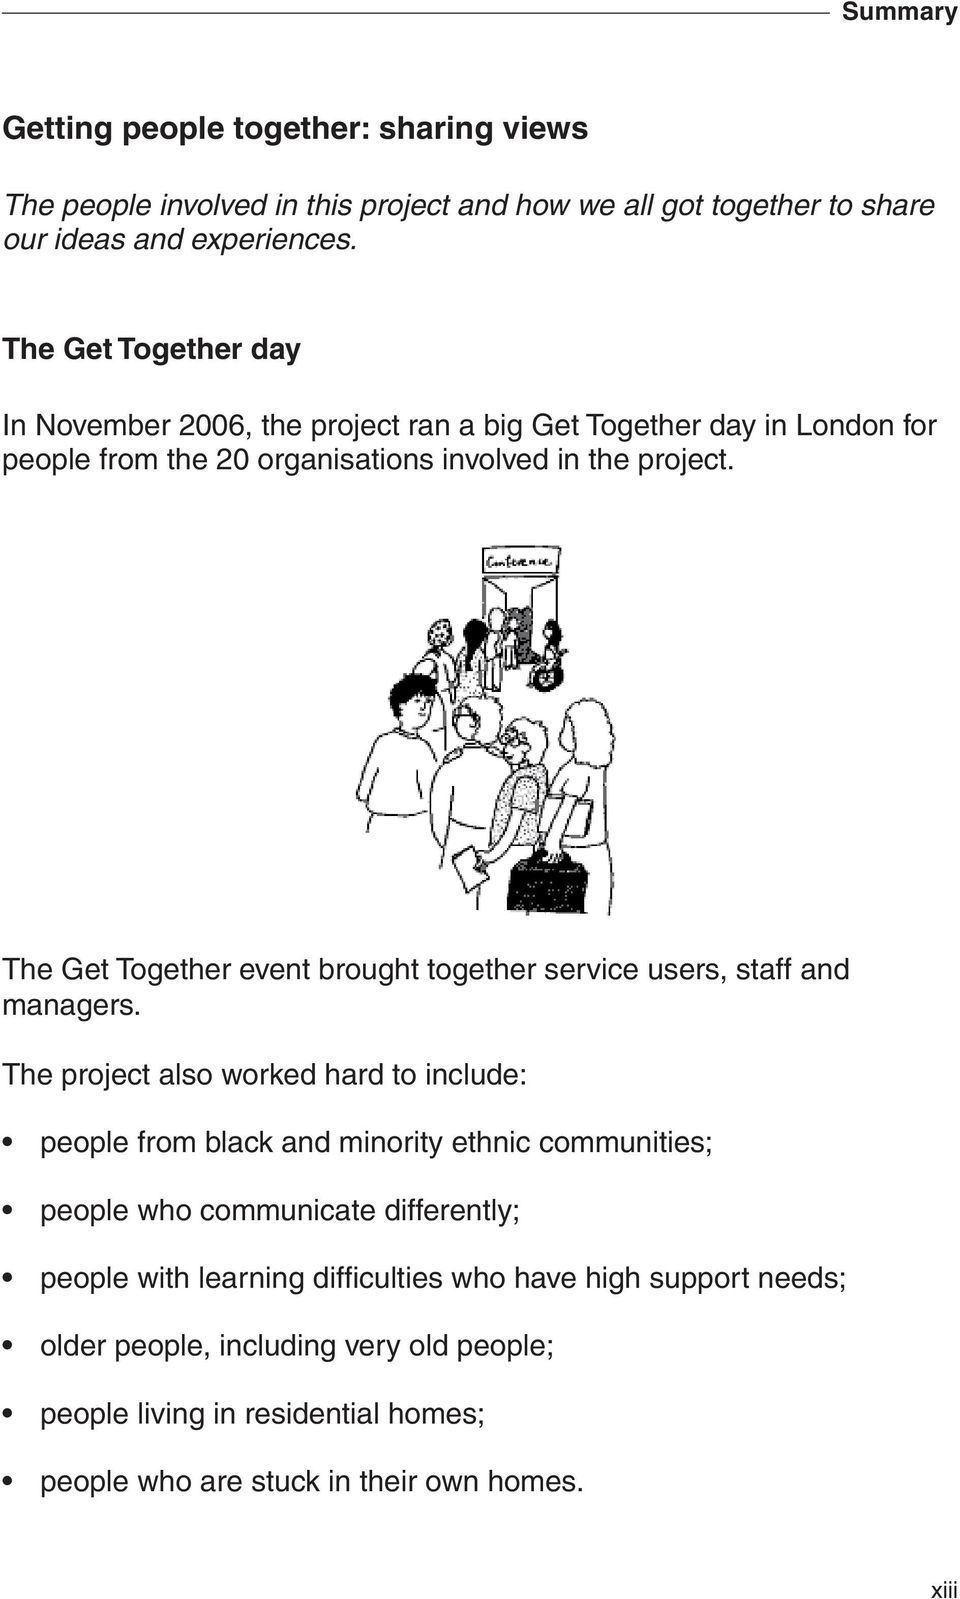 The Get Together event brought together service users, staff and managers.